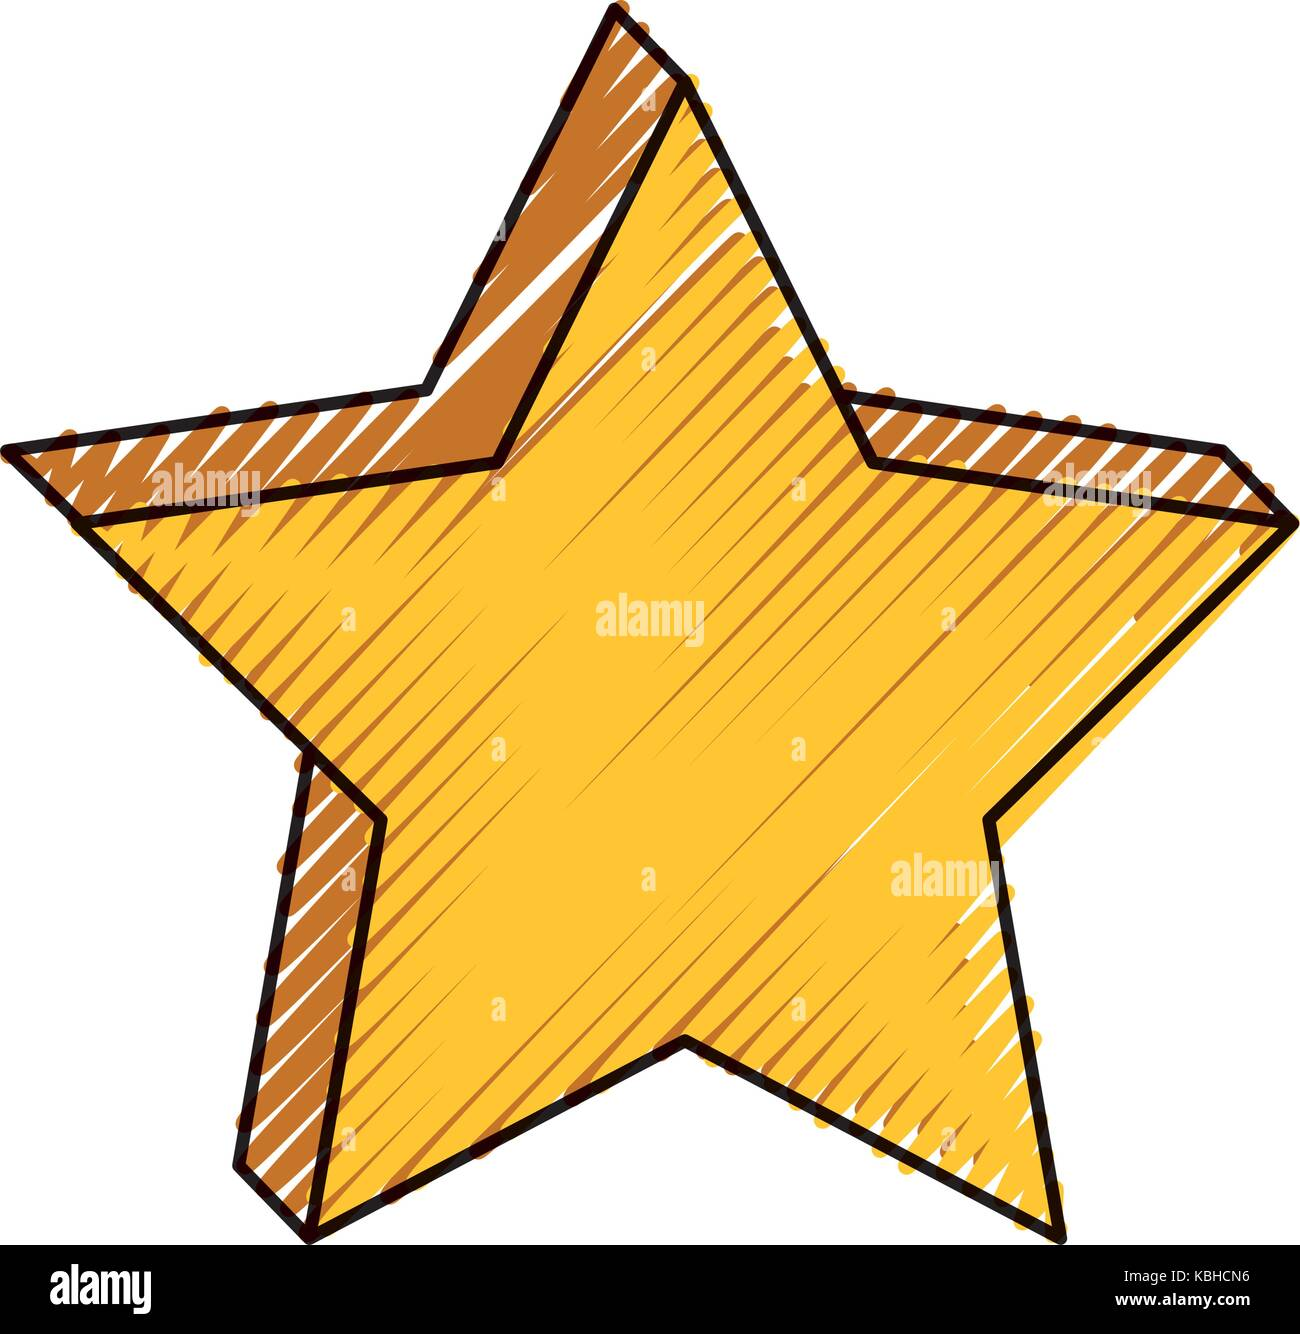 Star Doodle High Resolution Stock Photography And Images Alamy It took me quite some time to get the hang of it but i got there slowly. https www alamy com stock image colored star doodle over white background vector illustration 162037714 html